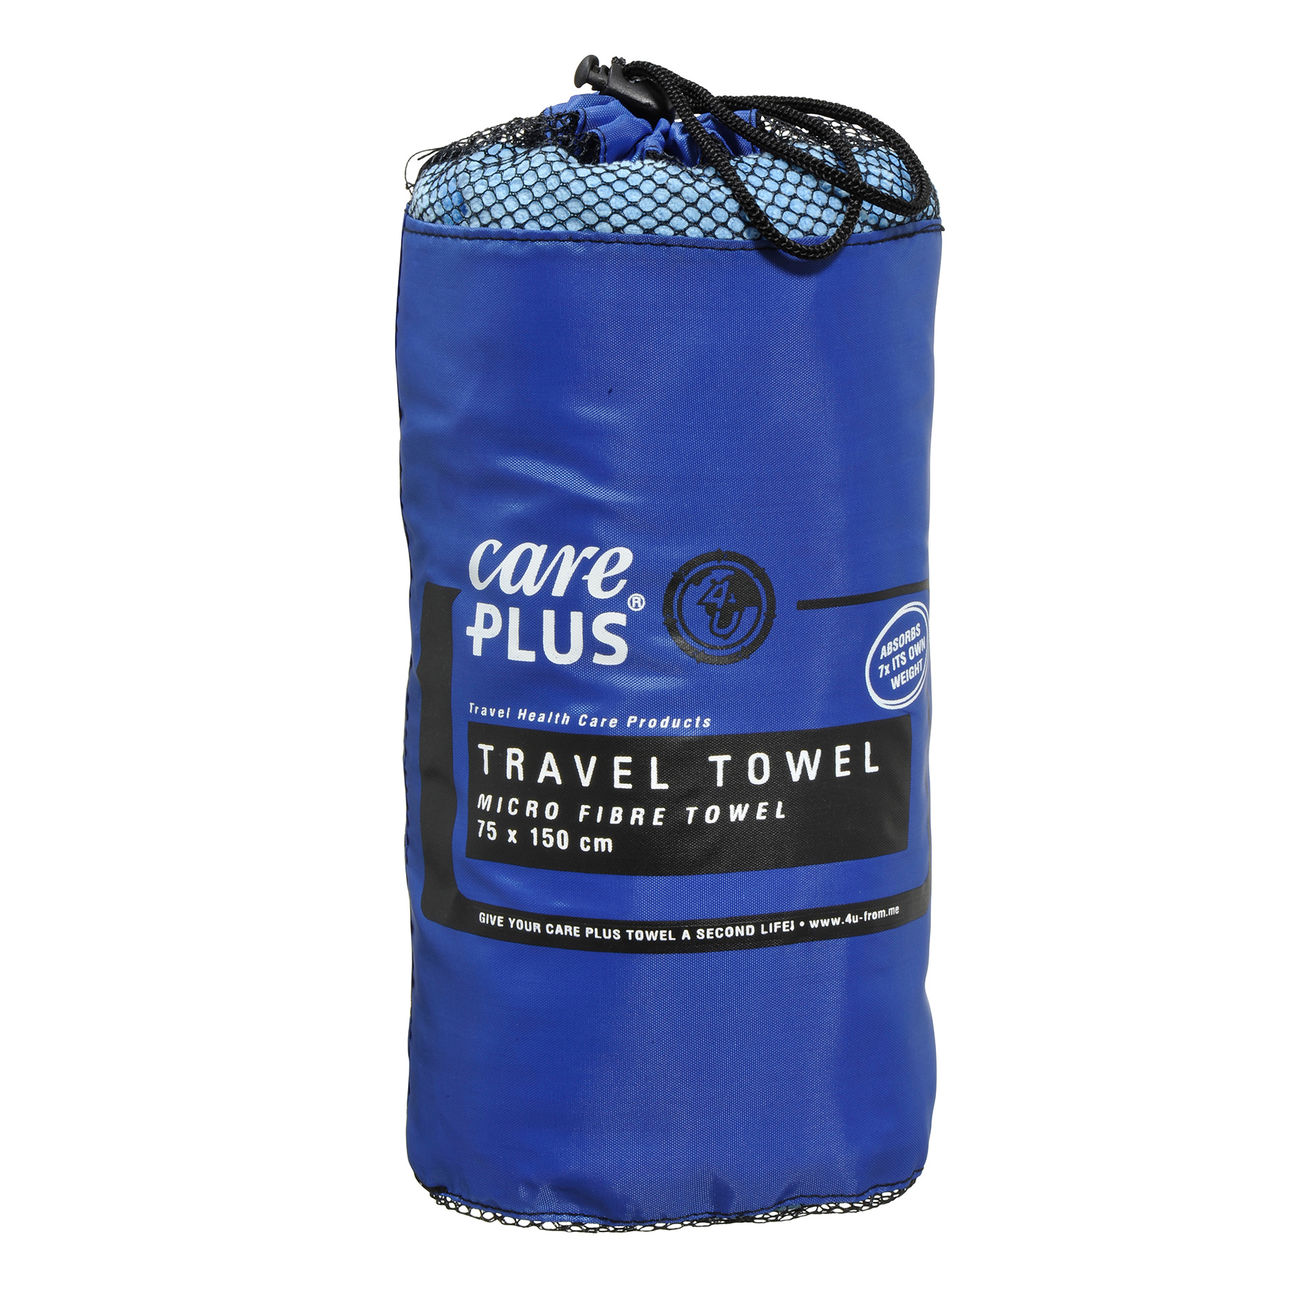 Care Plus Microfaserhandtuch Travel Towel 75 x 150 cm blau 1